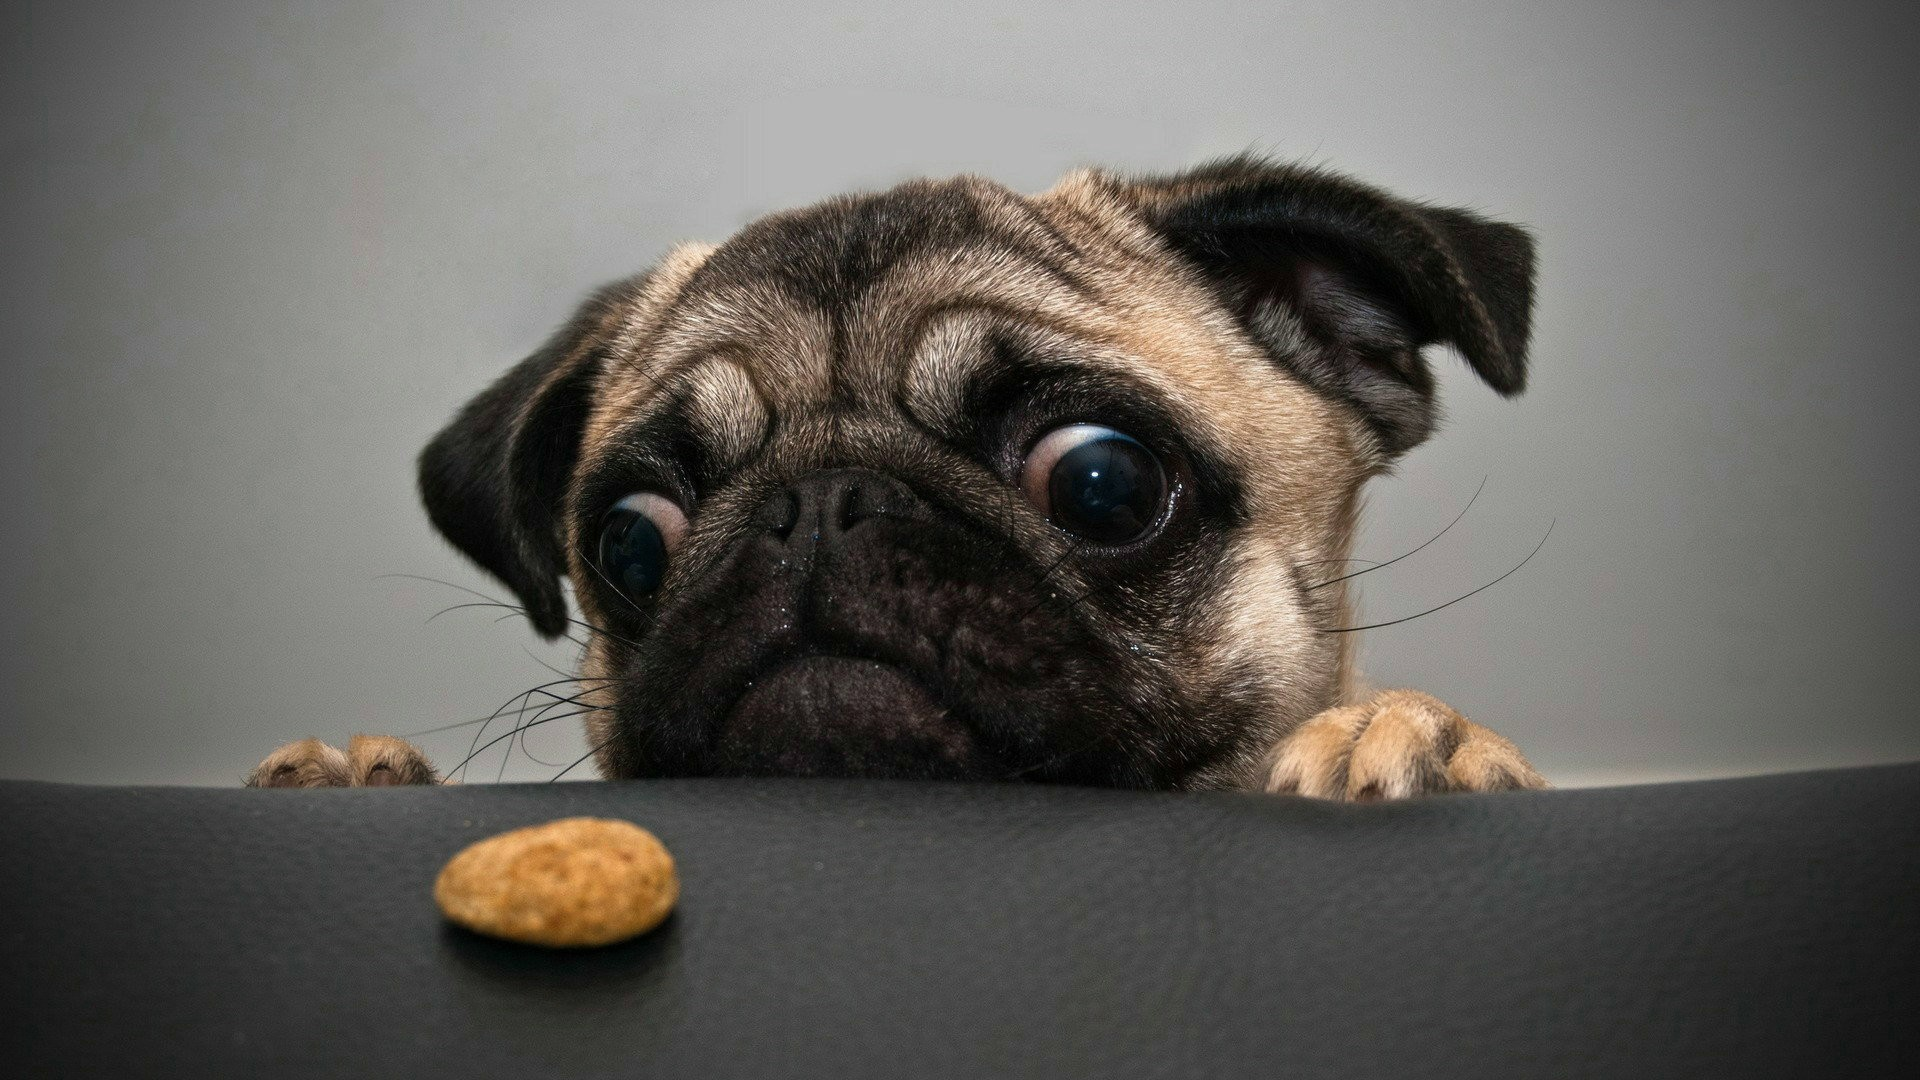 Pug Iphone Wallpaper Crazy Pug Wallpapers Hd Wallpapers Id 10816